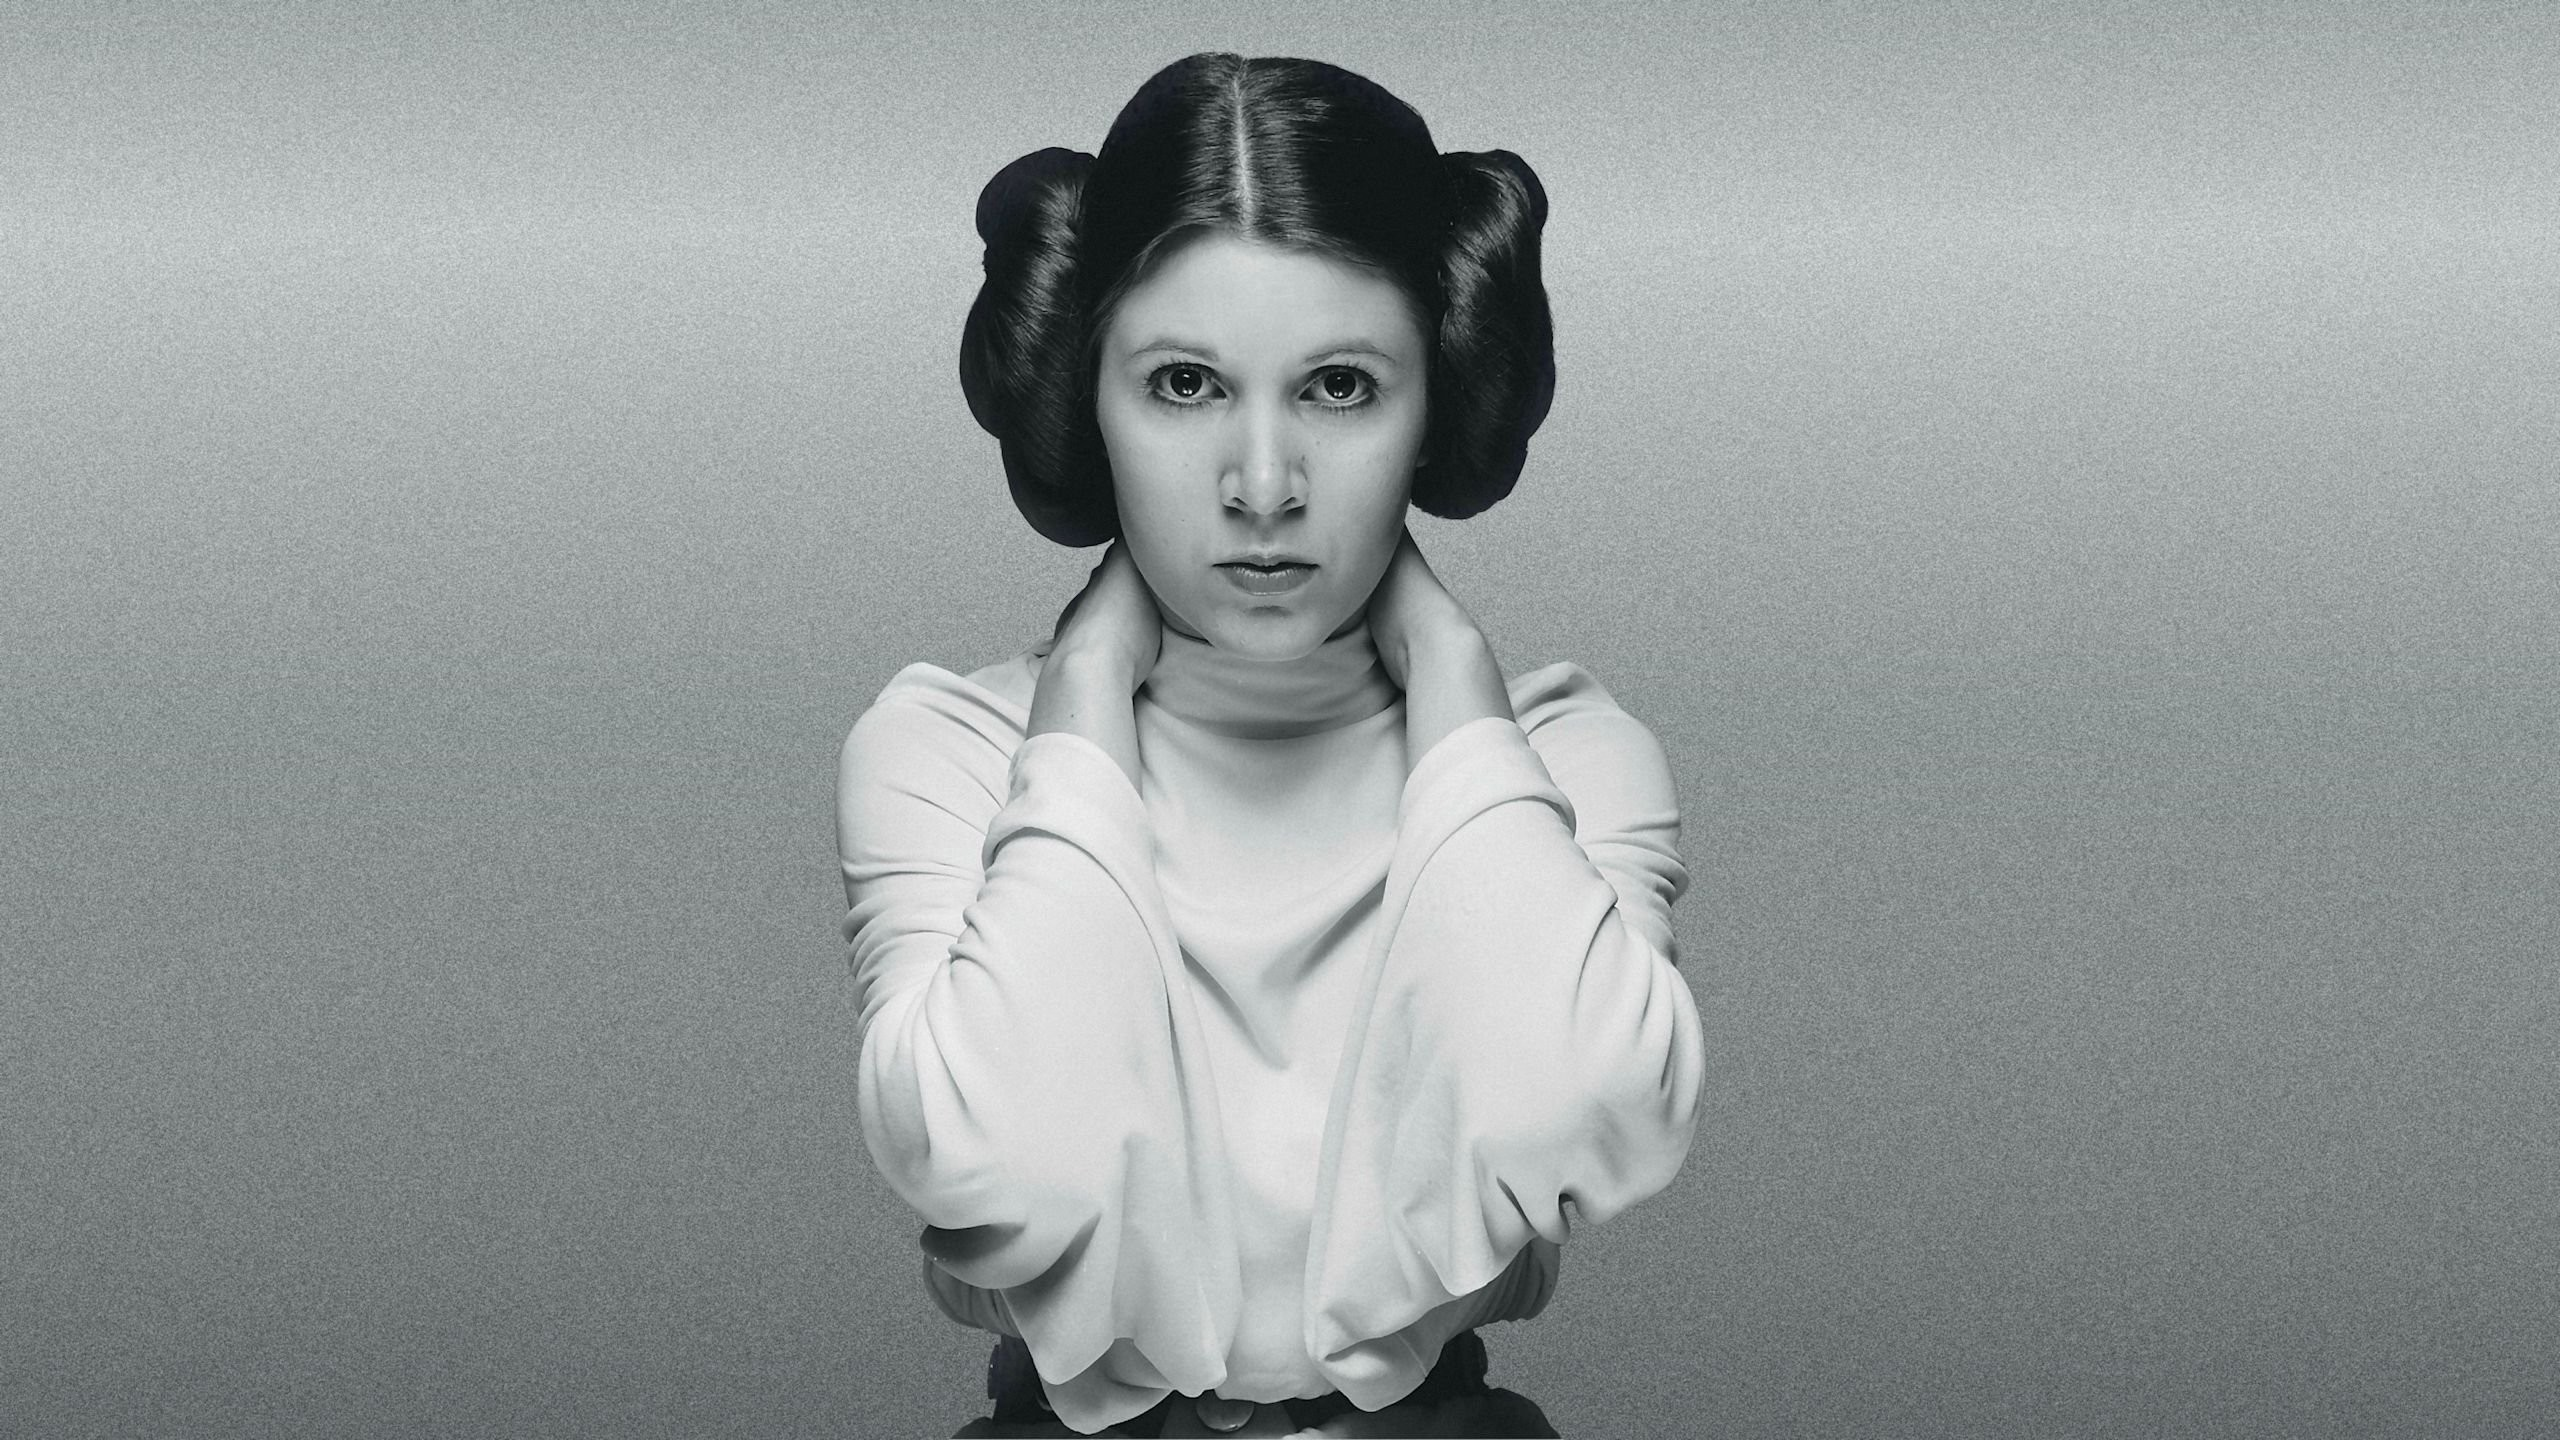 2560x1440 - Carrie Fisher Wallpapers 11